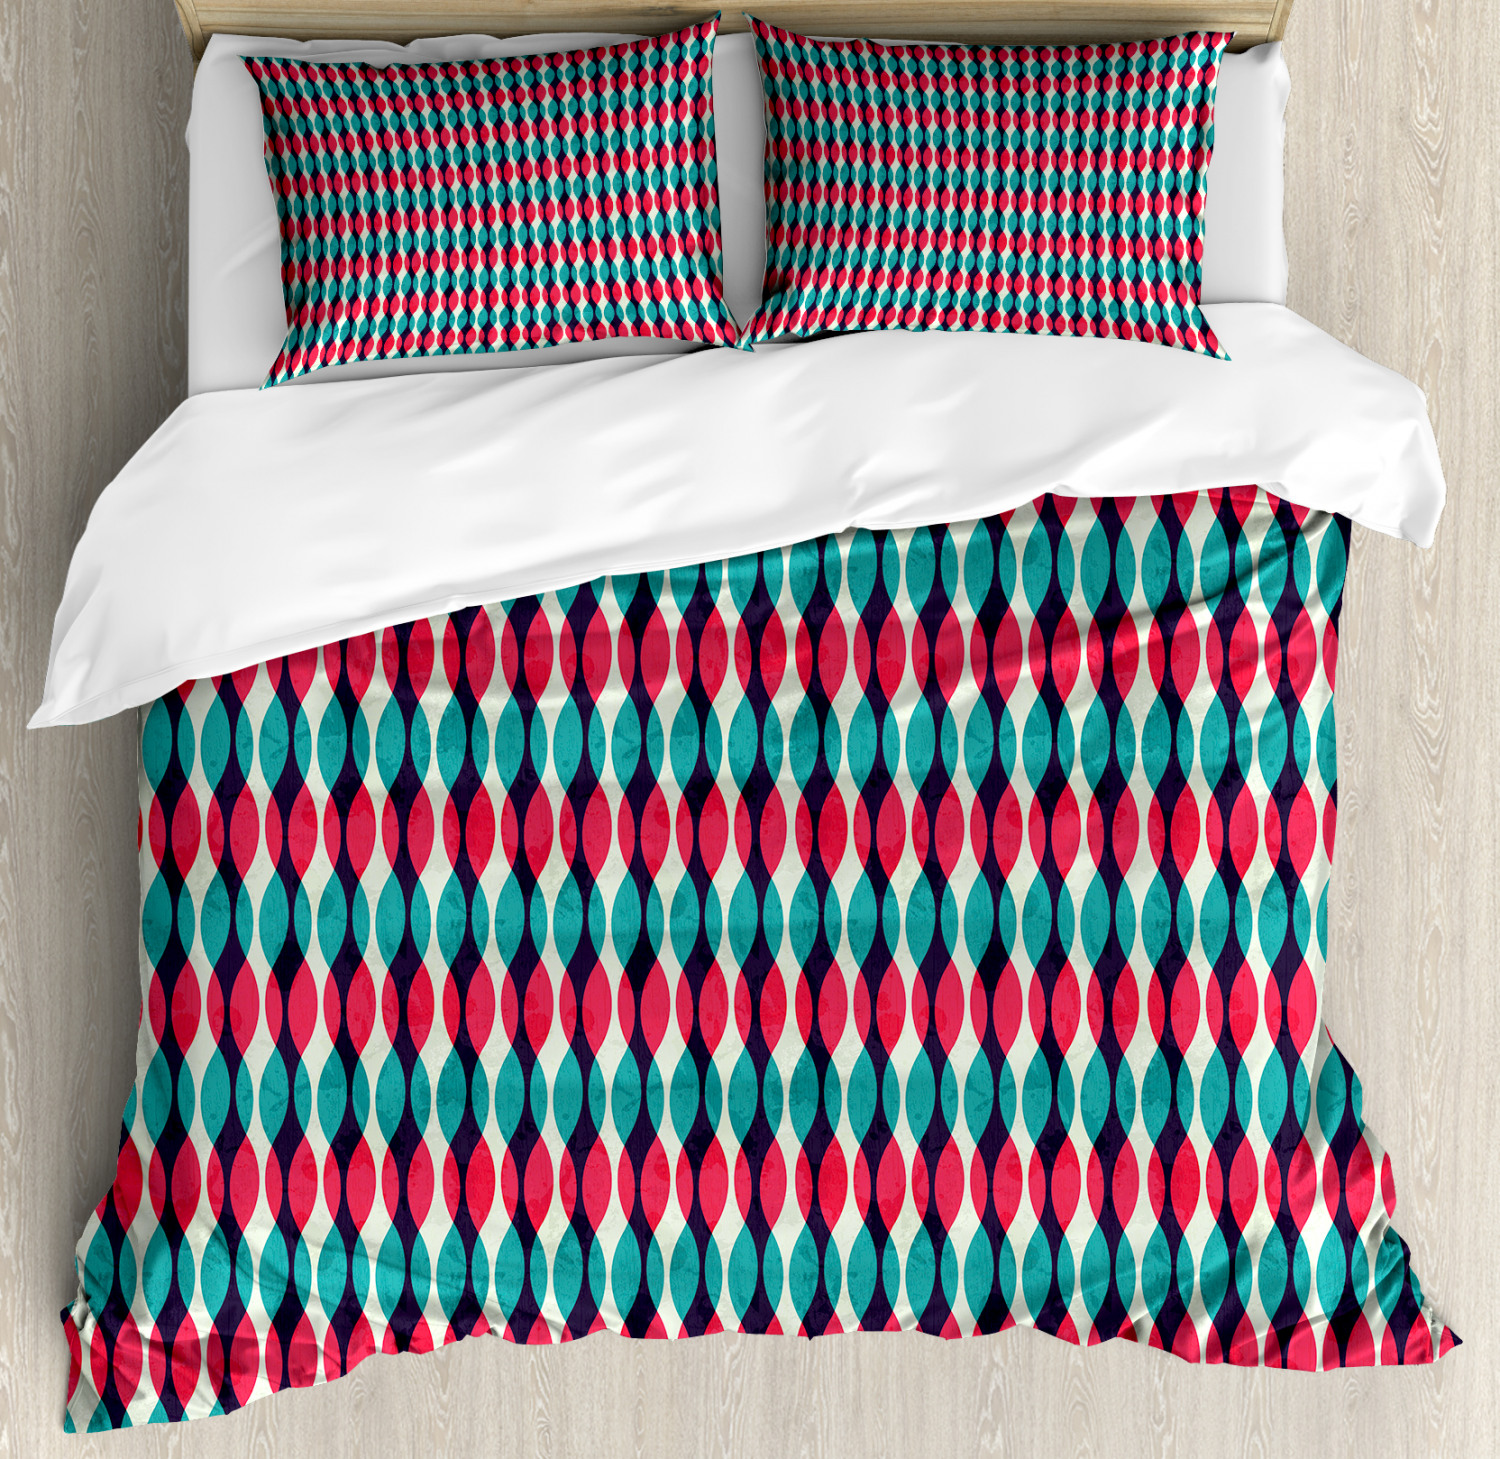 Geometric Duvet Cover Set with Pillow Shams Old School Shapes Print